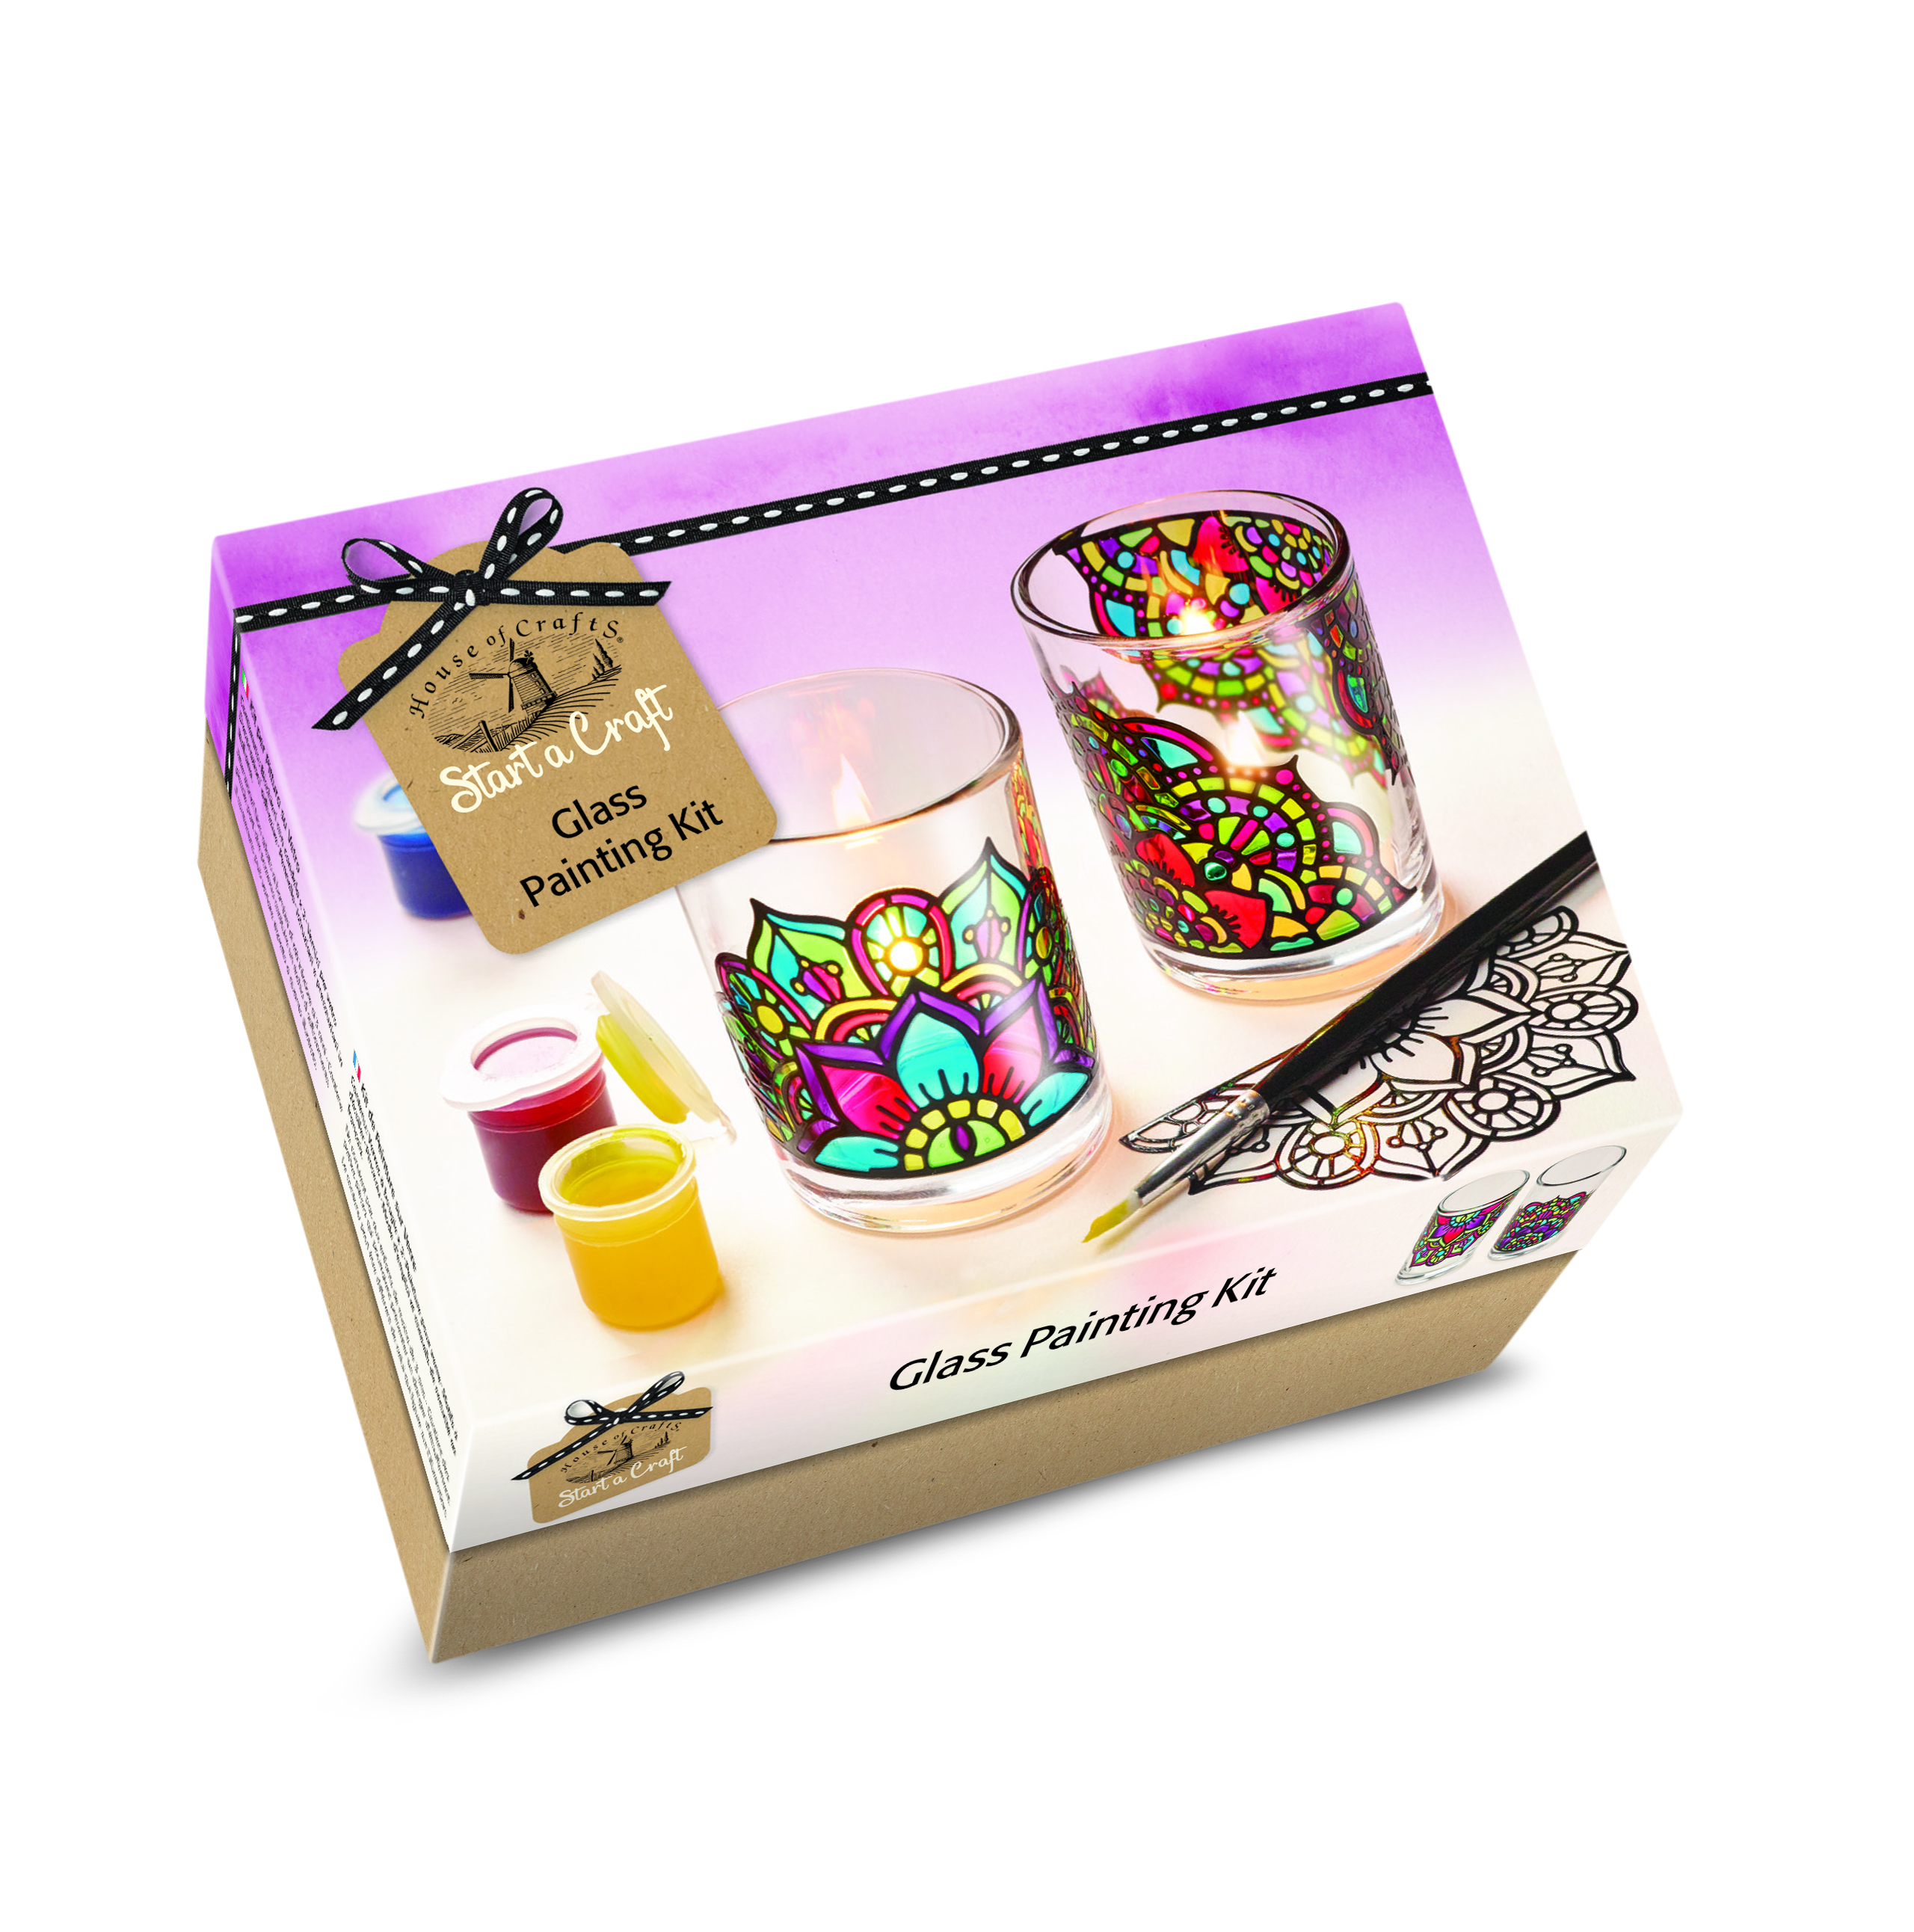 HOUSE OF CRAFTS GLASS PAINTING KIT SC050